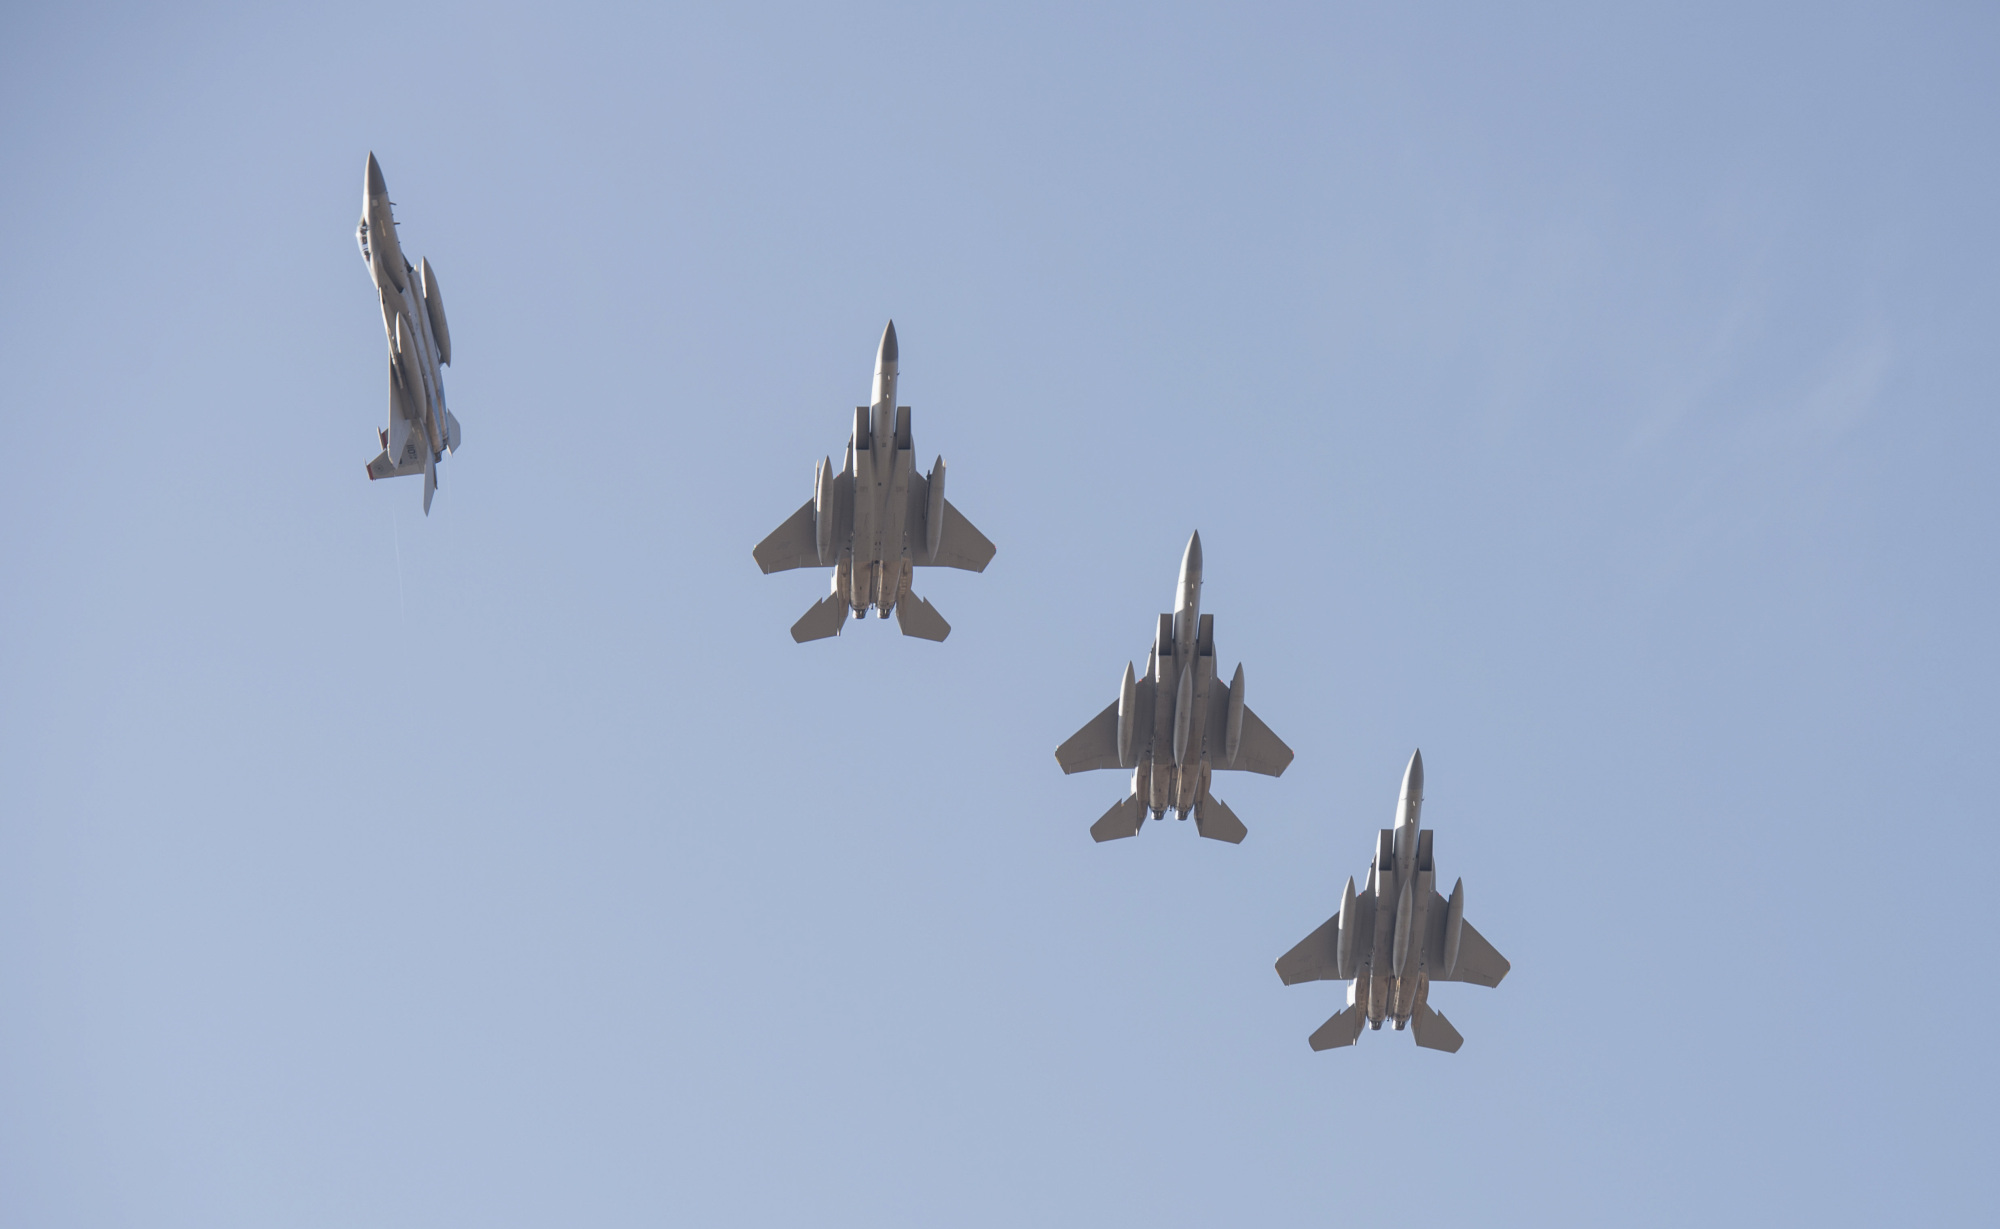 Four U.S. Air Force F-15s from Kadena Air Base in Okinawa Prefecture fly over Gwangju Air Base in South Korea on Dec. 1. The aircraft arrived at Gwangju to participate in the Vigilant Ace joint military exercises. | 18TH WING PUBLIC AFFAIRS